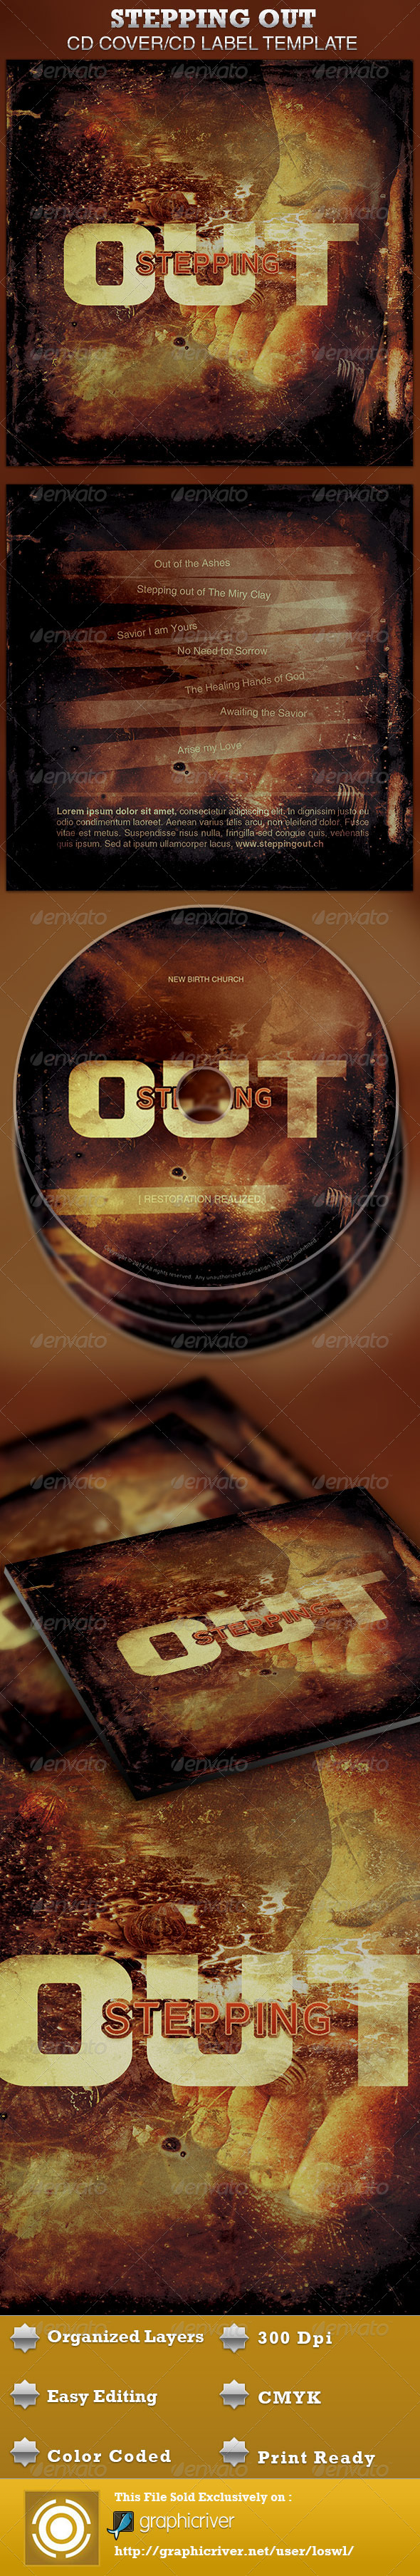 GraphicRiver Stepping Out CD Artwork Template 4265365